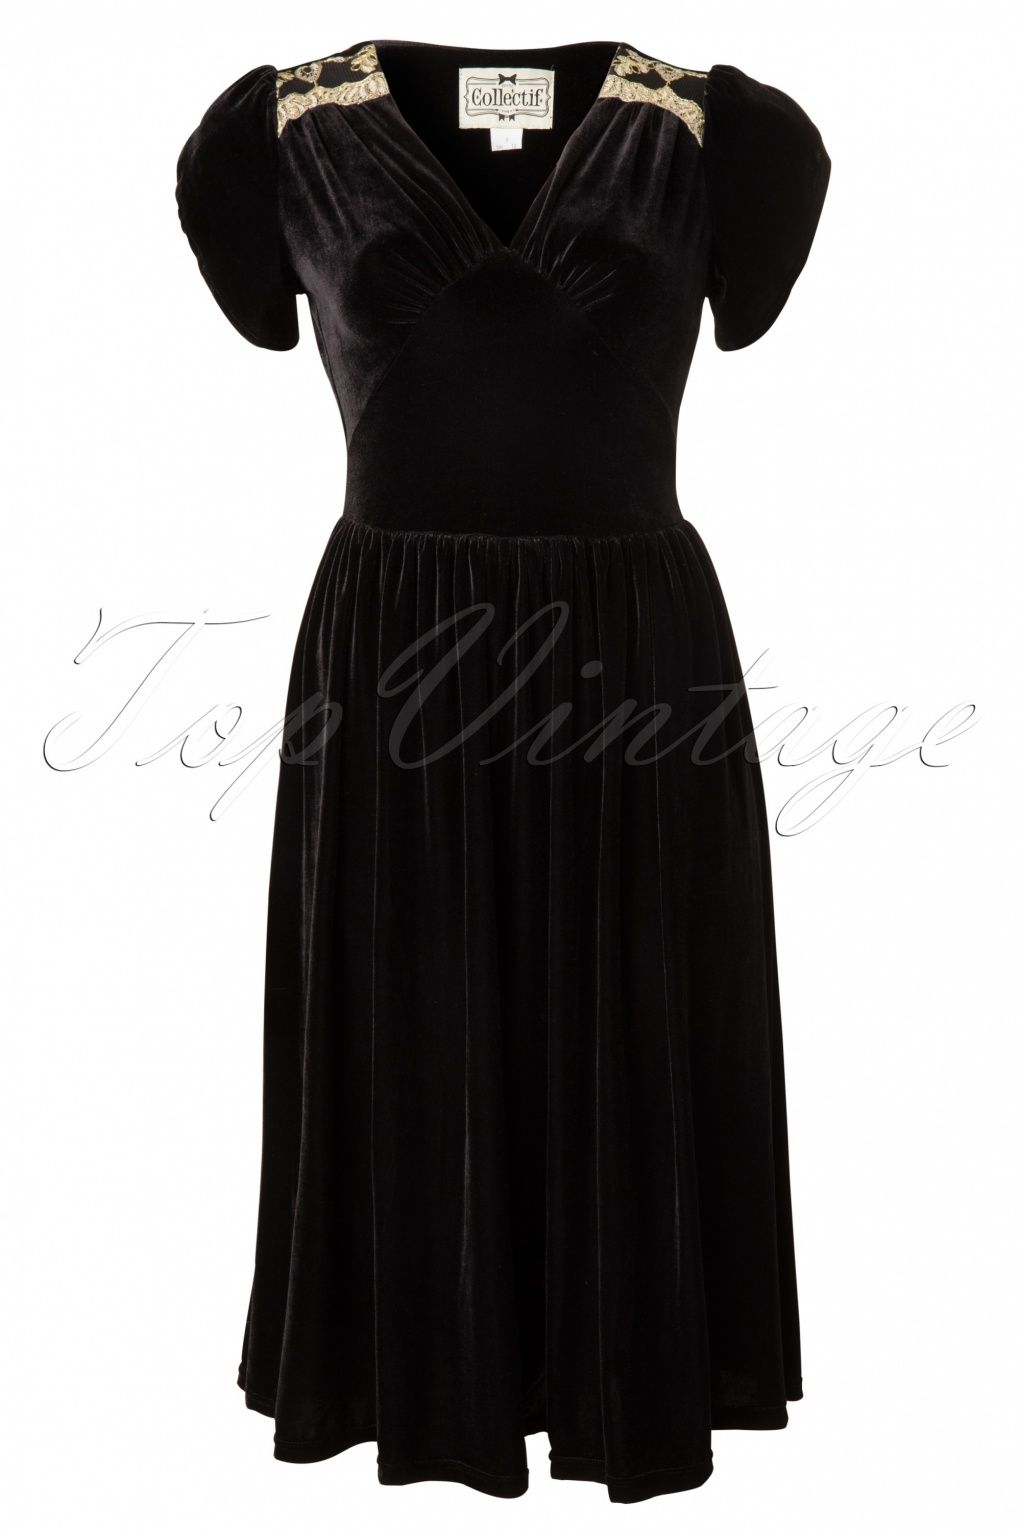 Collectif Clothing - 40s Helen Black Velvet Dress